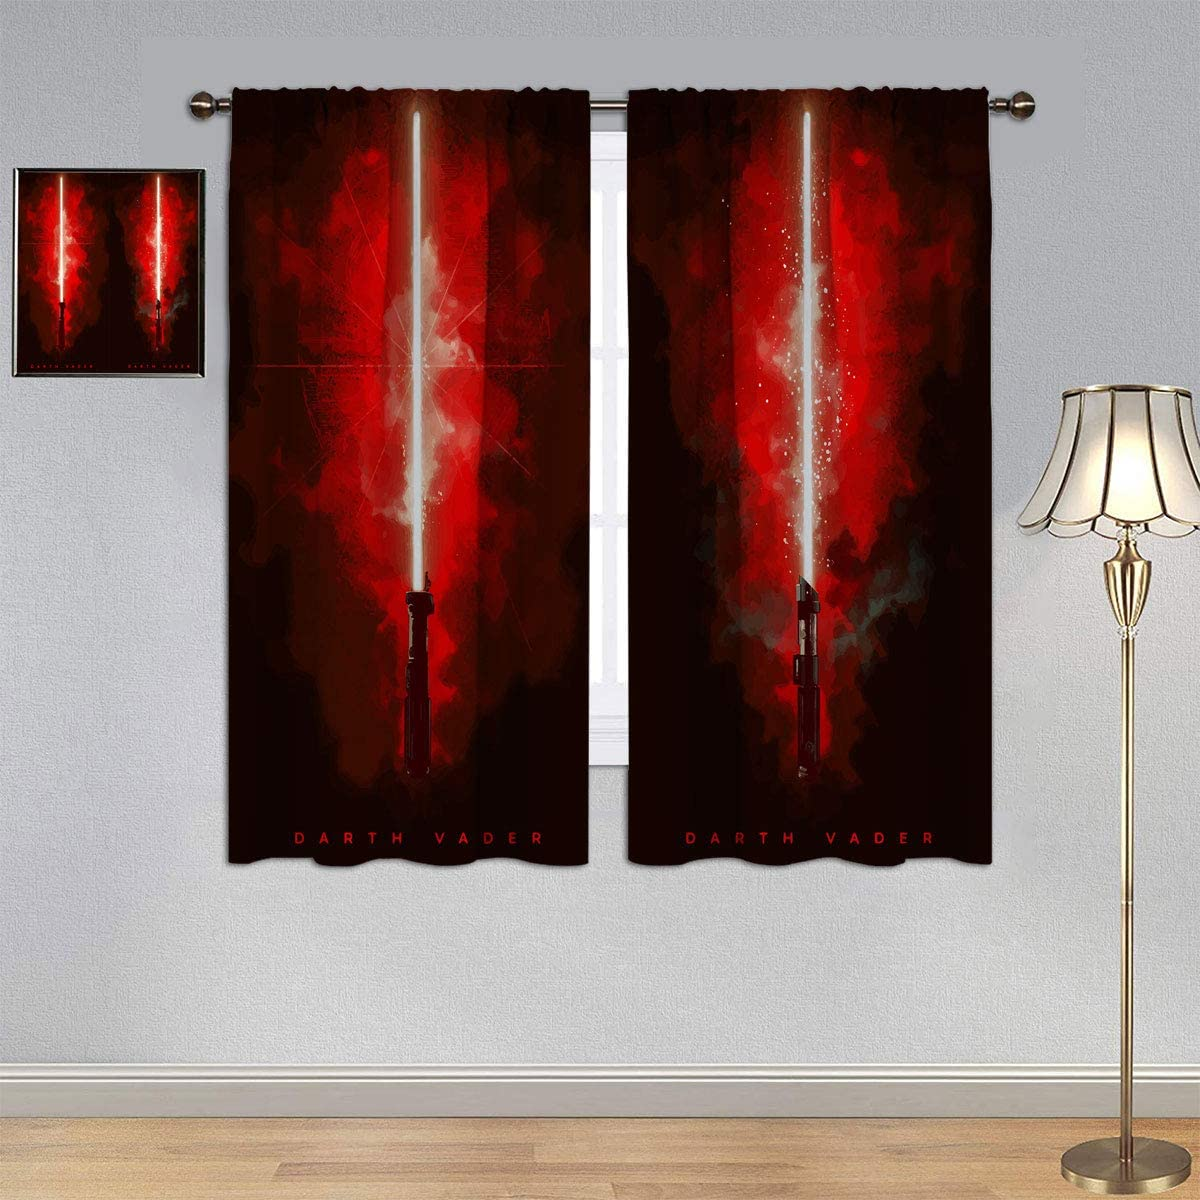 Blackout Window Draperies Star Wars Lightsaber Curtains, Darth Vader Curtains Rod Pocket for Bedroom Living Room 84×84 Inch